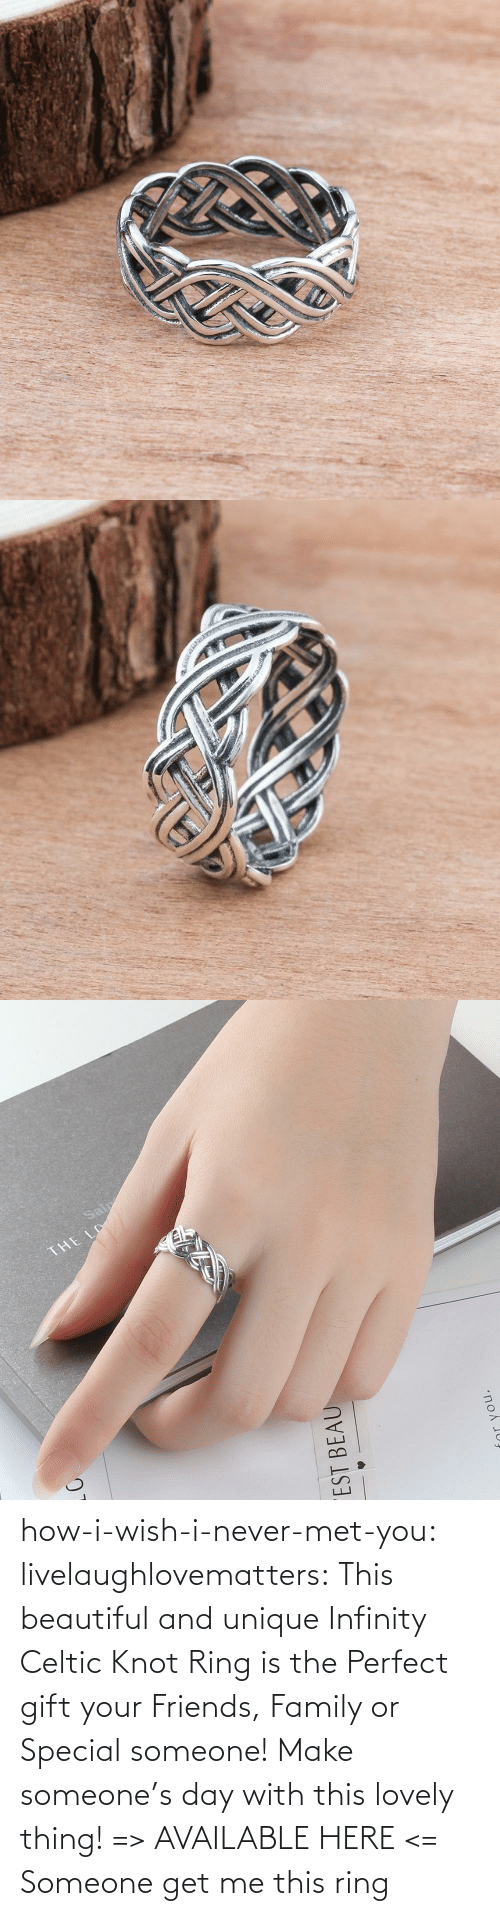 I Never: how-i-wish-i-never-met-you: livelaughlovematters:  This beautiful and unique Infinity Celtic Knot Ring is the Perfect gift your Friends, Family or Special someone! Make someone's day with this lovely thing! => AVAILABLE HERE <=    Someone get me this ring